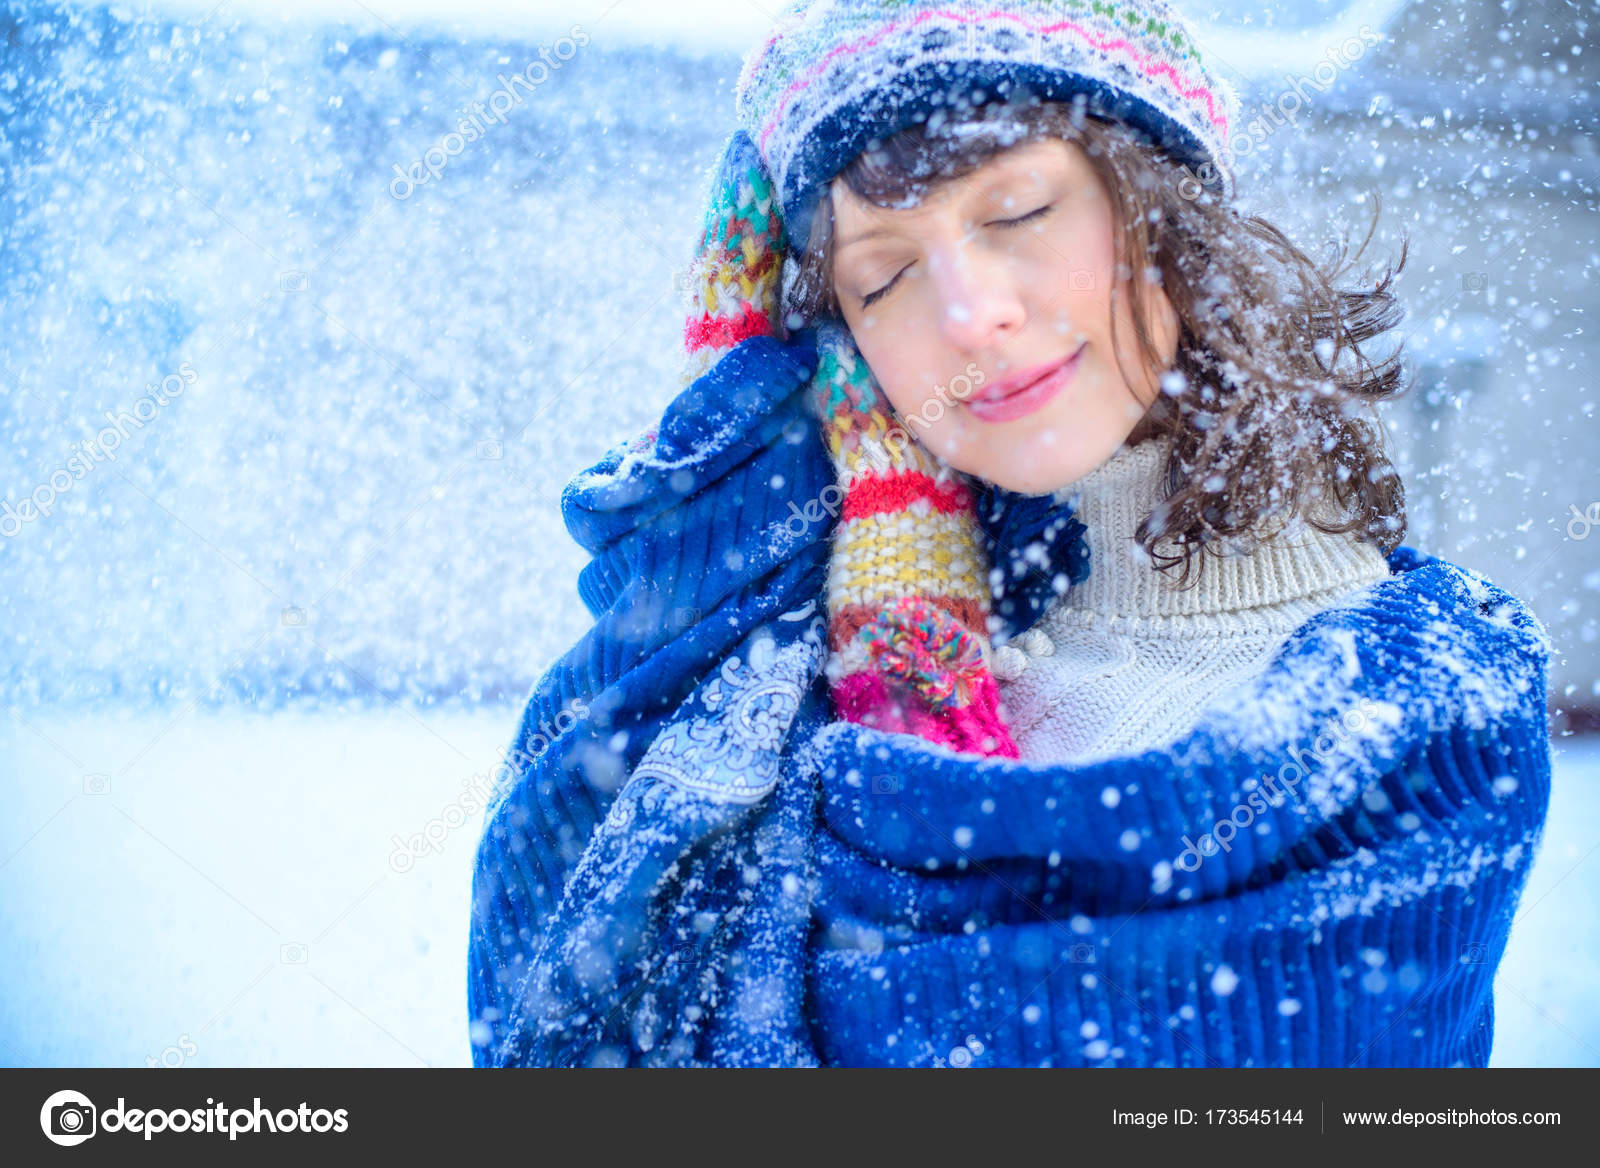 0c94579f558d6 Christmas sale. Beautiful surprised woman in red mitts and white sweater  winter background with snow